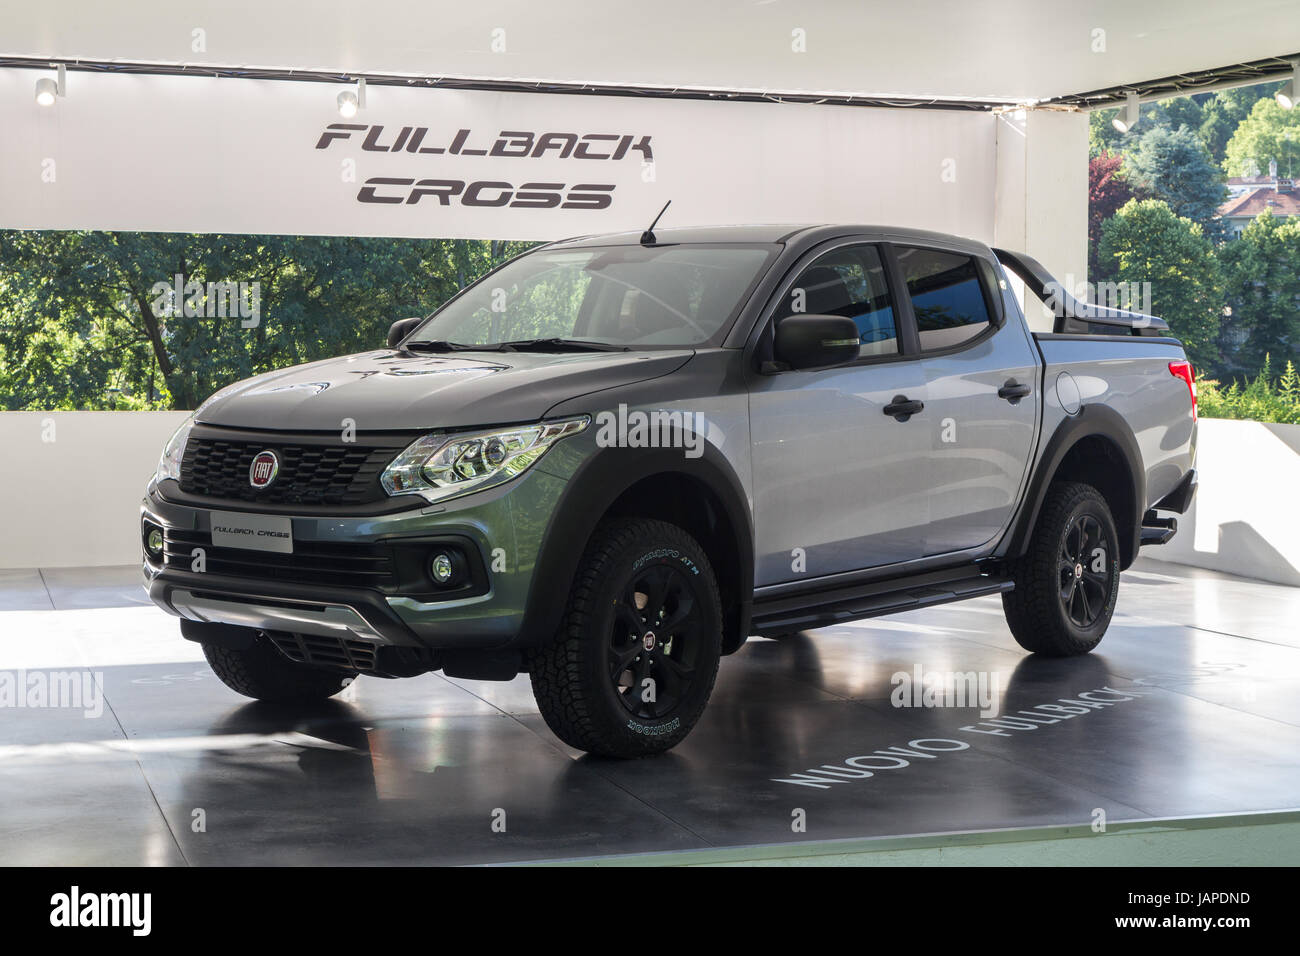 Turin Italy 7th June 2017 A Fiat Fullback Cross Third Edition Of Pickup Truck Parco Valentino Car Show Hosts Cars By Many Automobile Manufacturers And Designers